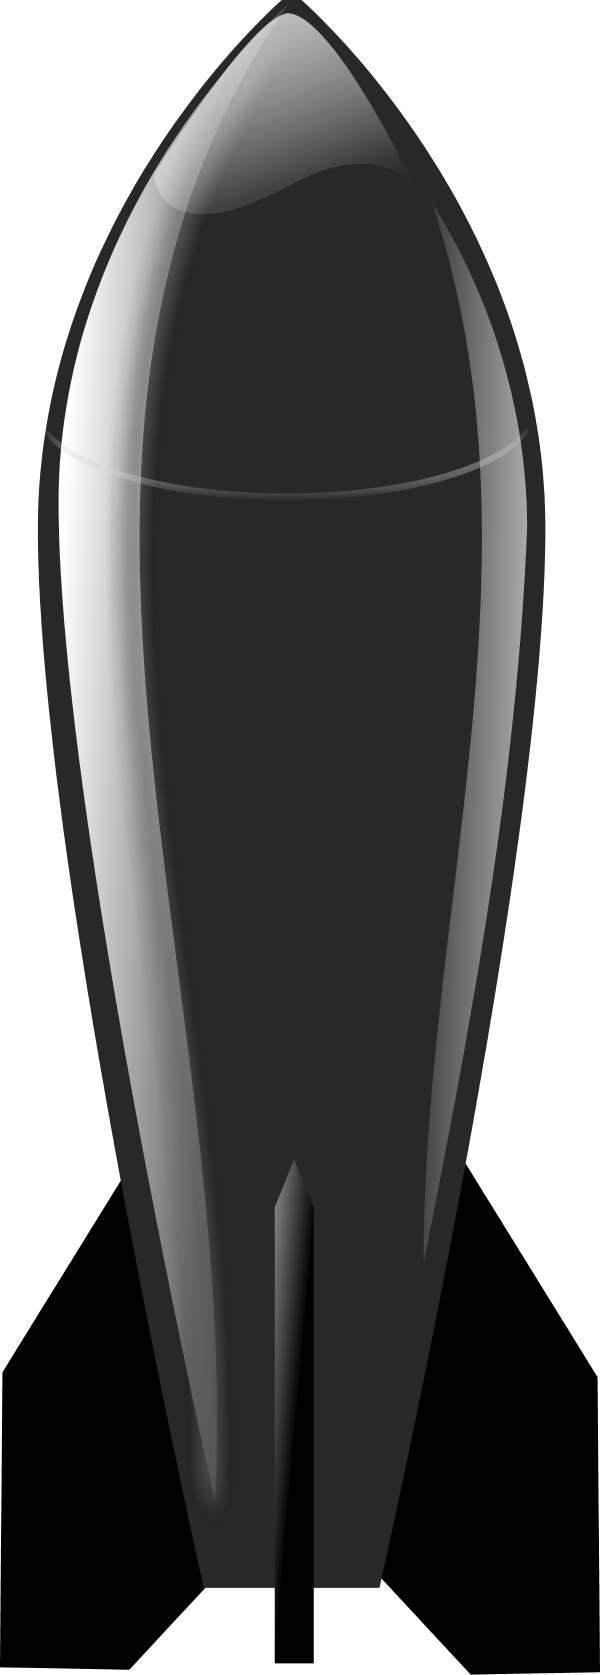 Nuclear missile clipart - Clipground